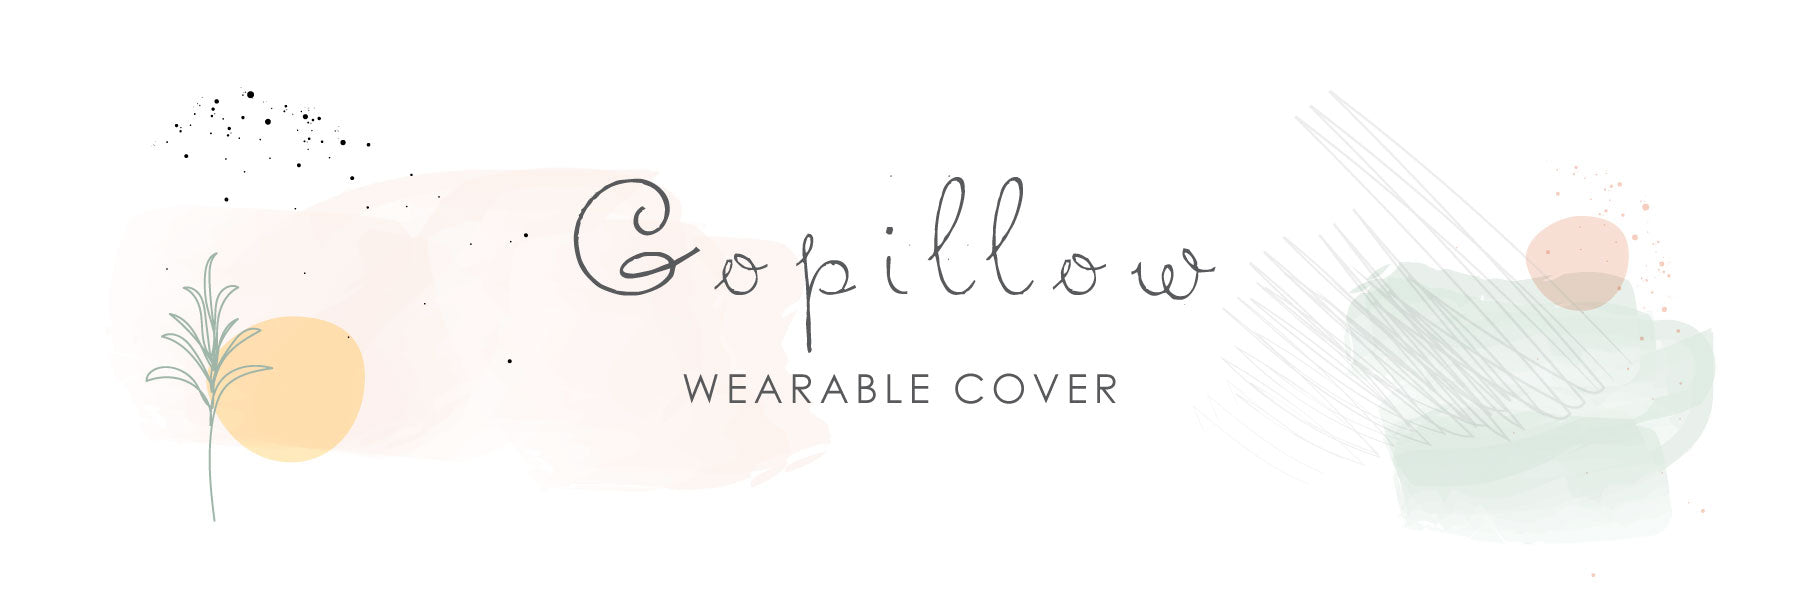 gopillow wearable cover